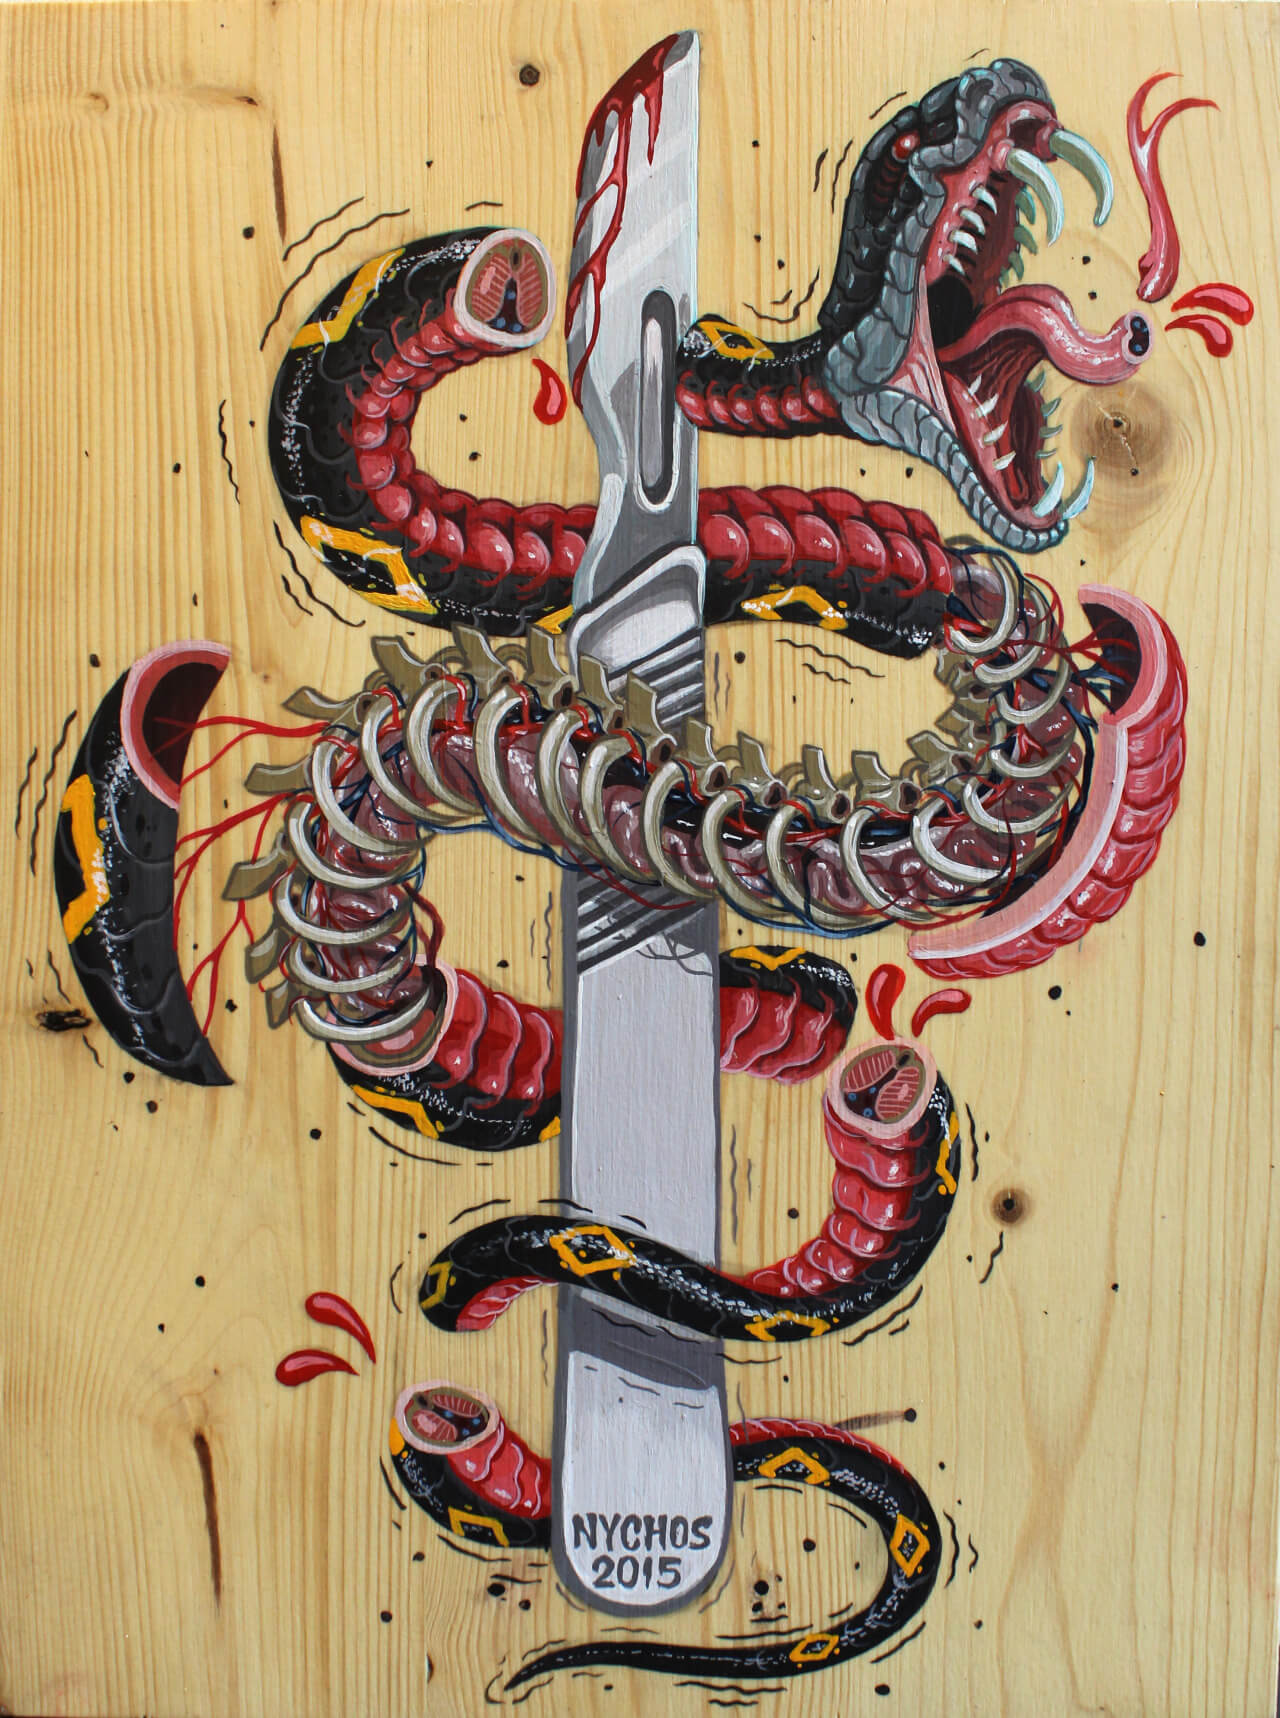 nychos street art illustration 4